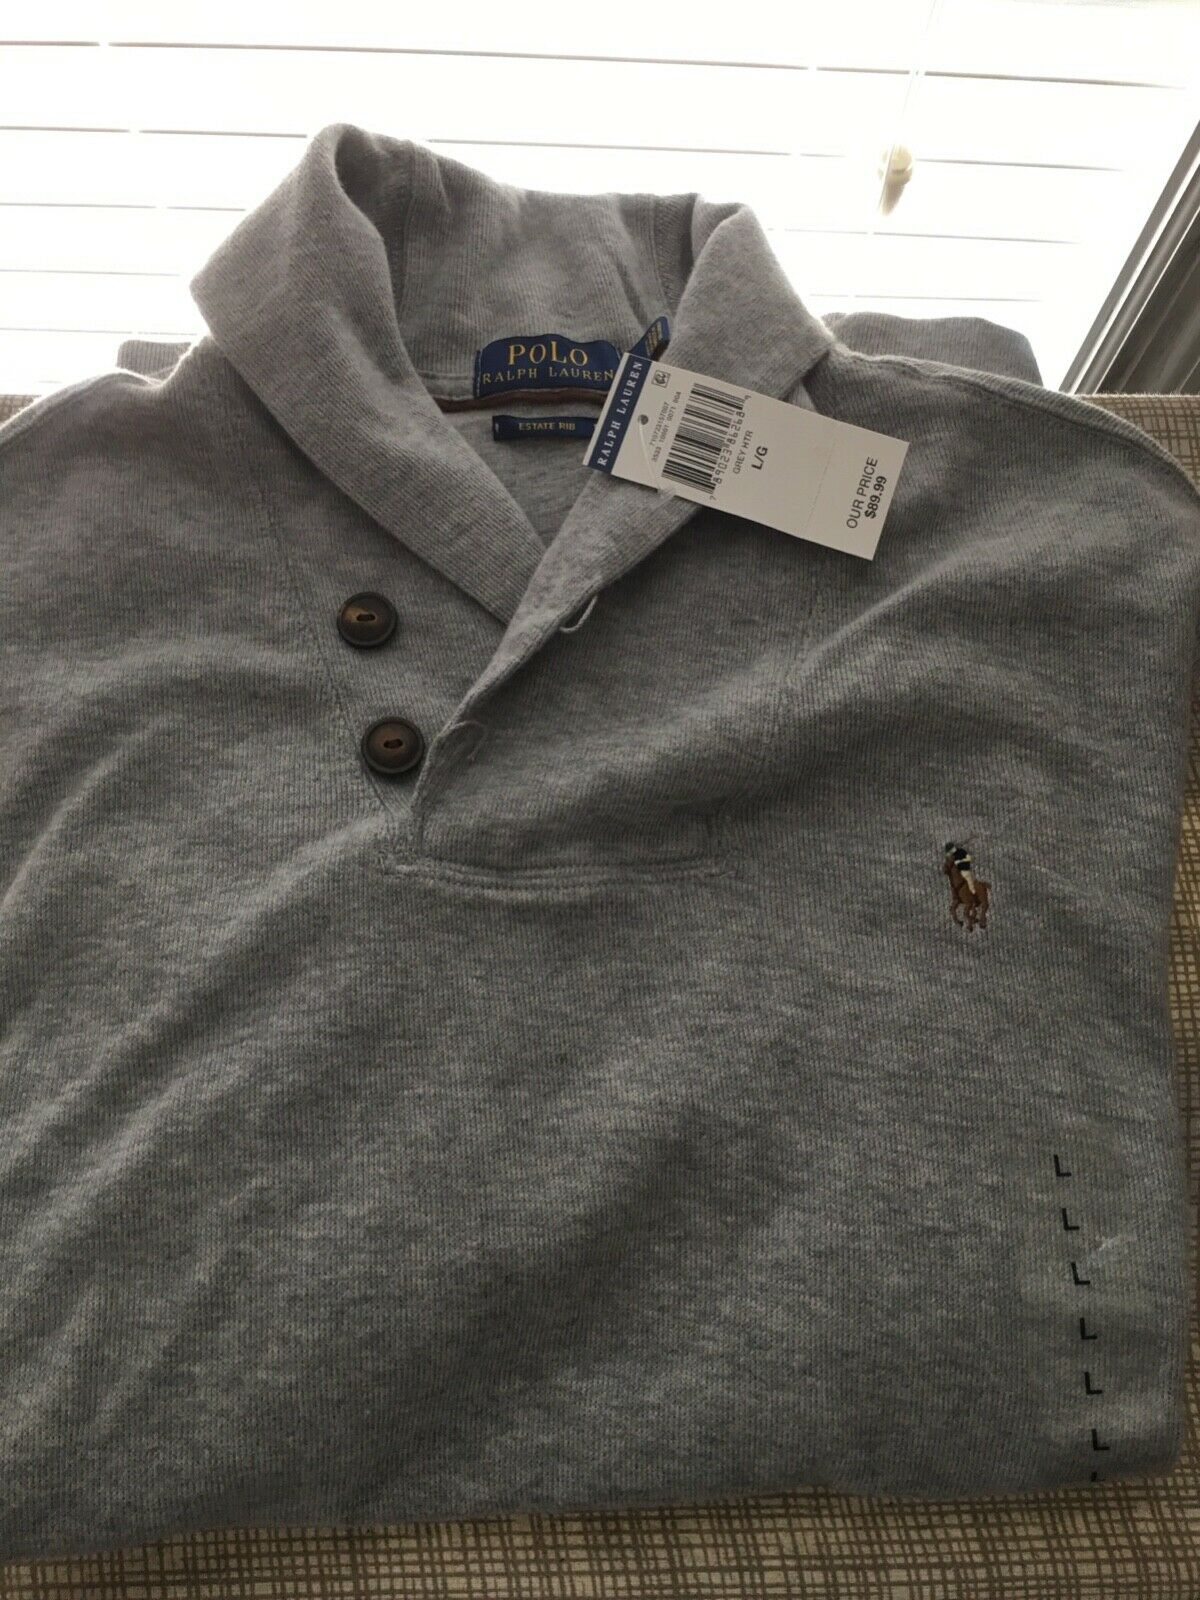 Polo ralph lauren Shawl sweater L- heather grey